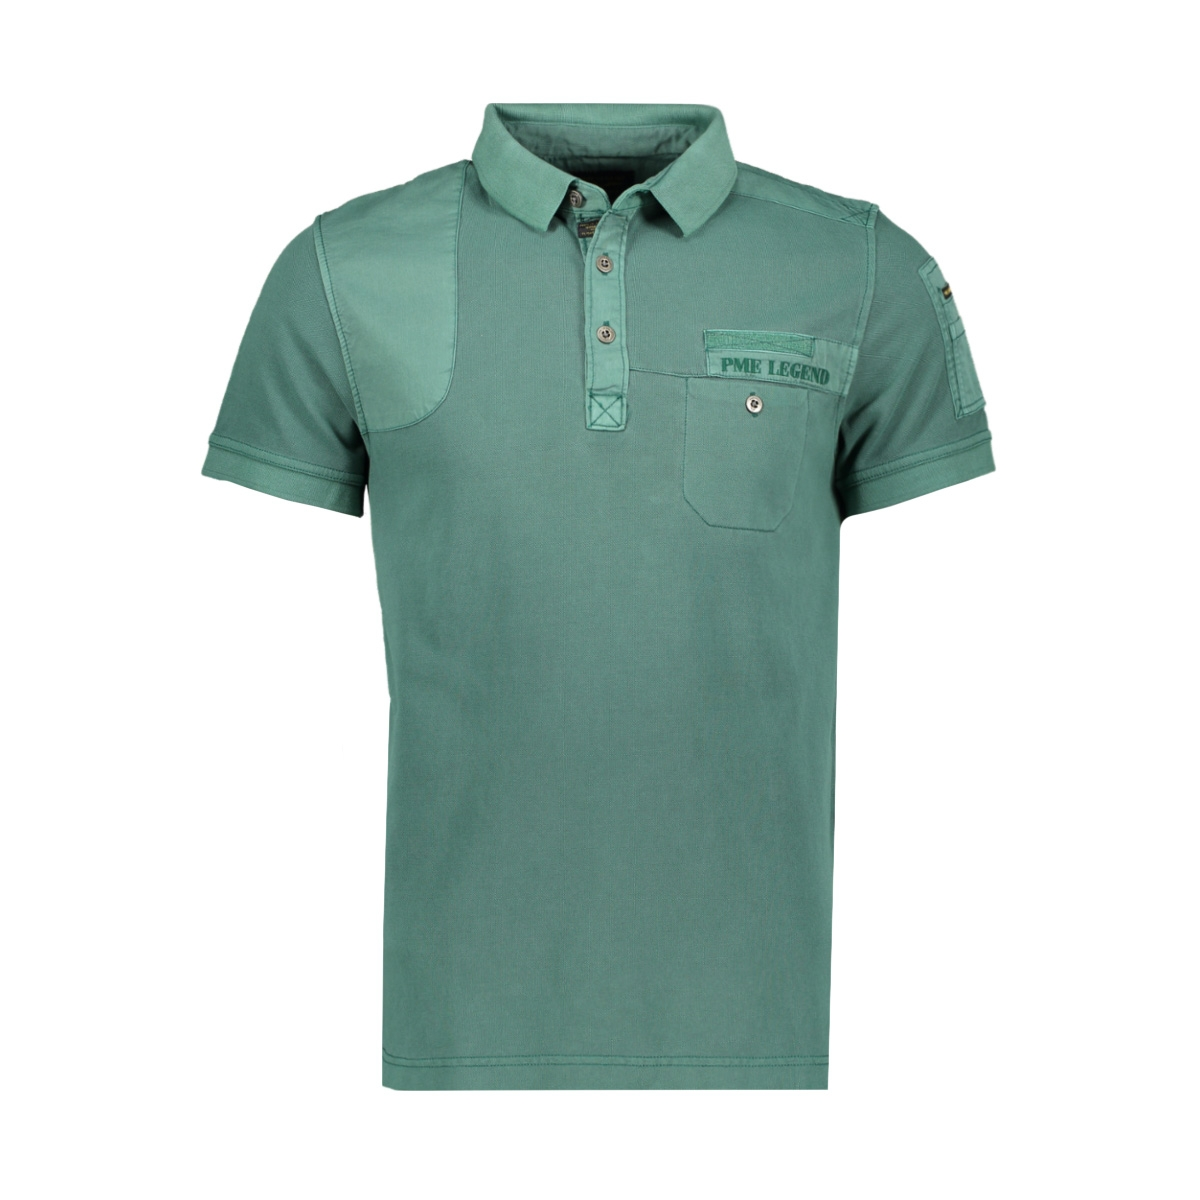 ppss191855 pme legend polo 6082